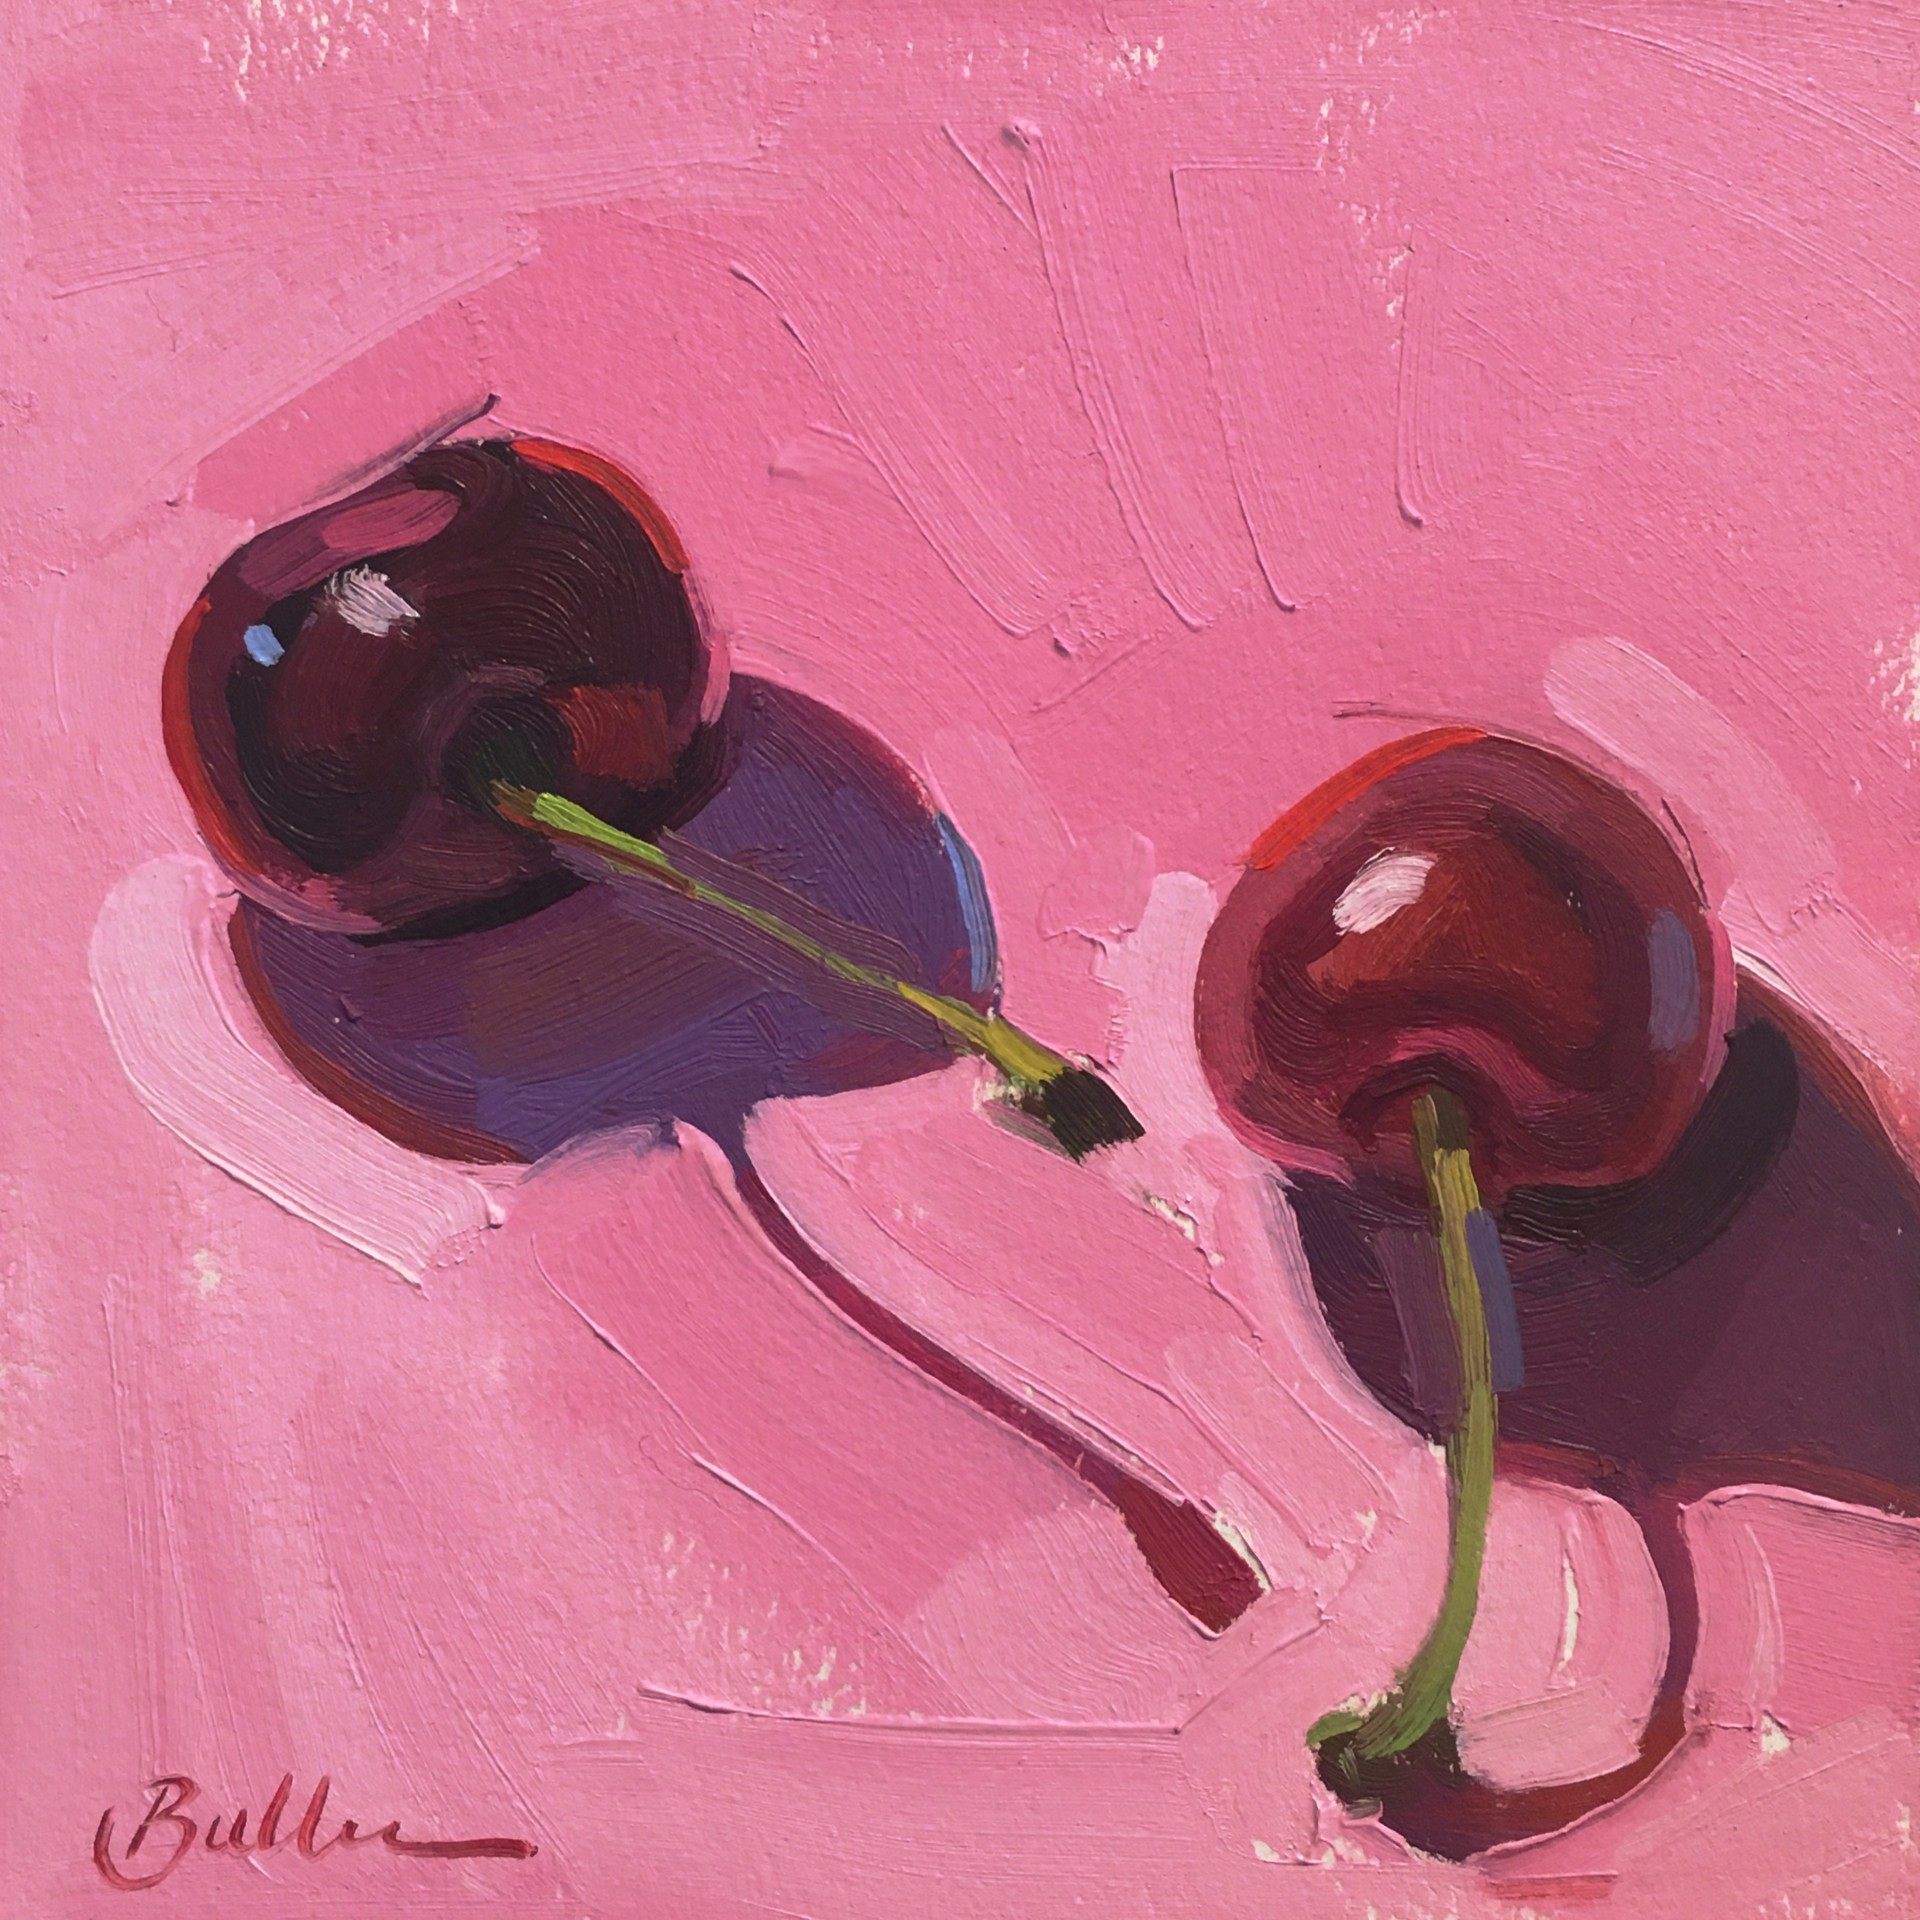 Two Cherries on Pink by Samantha Buller